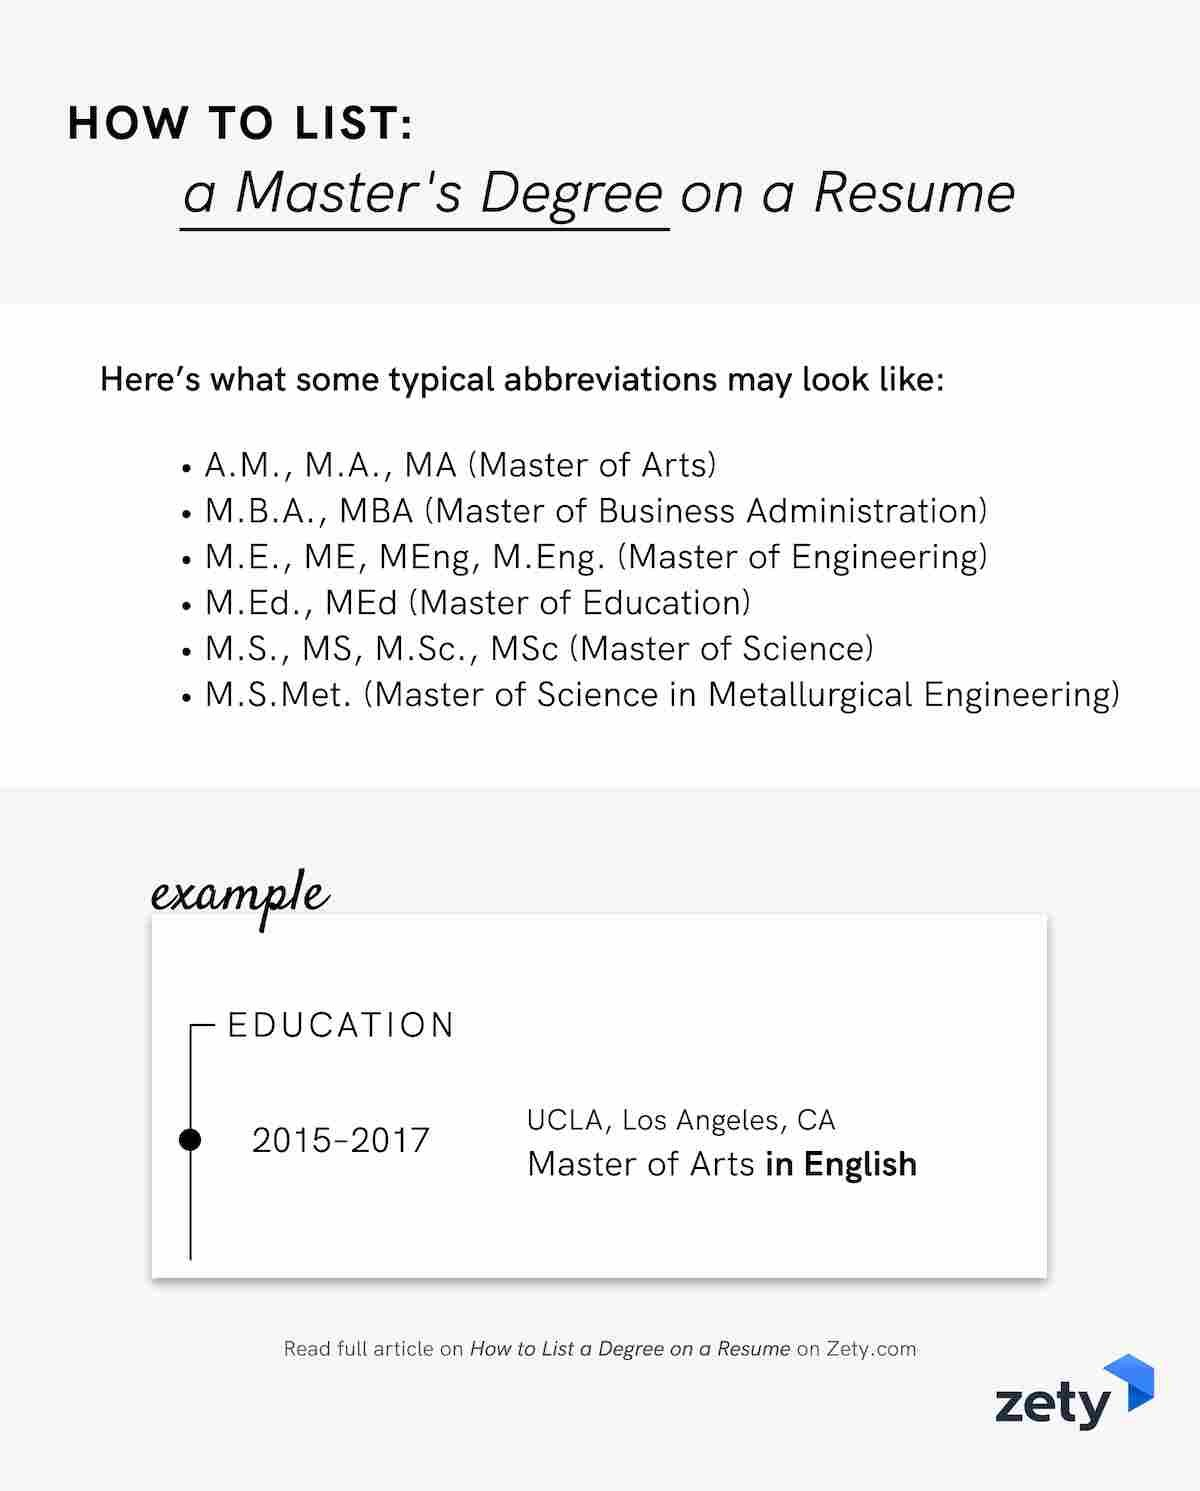 How to list a Master's Degree on a Resume